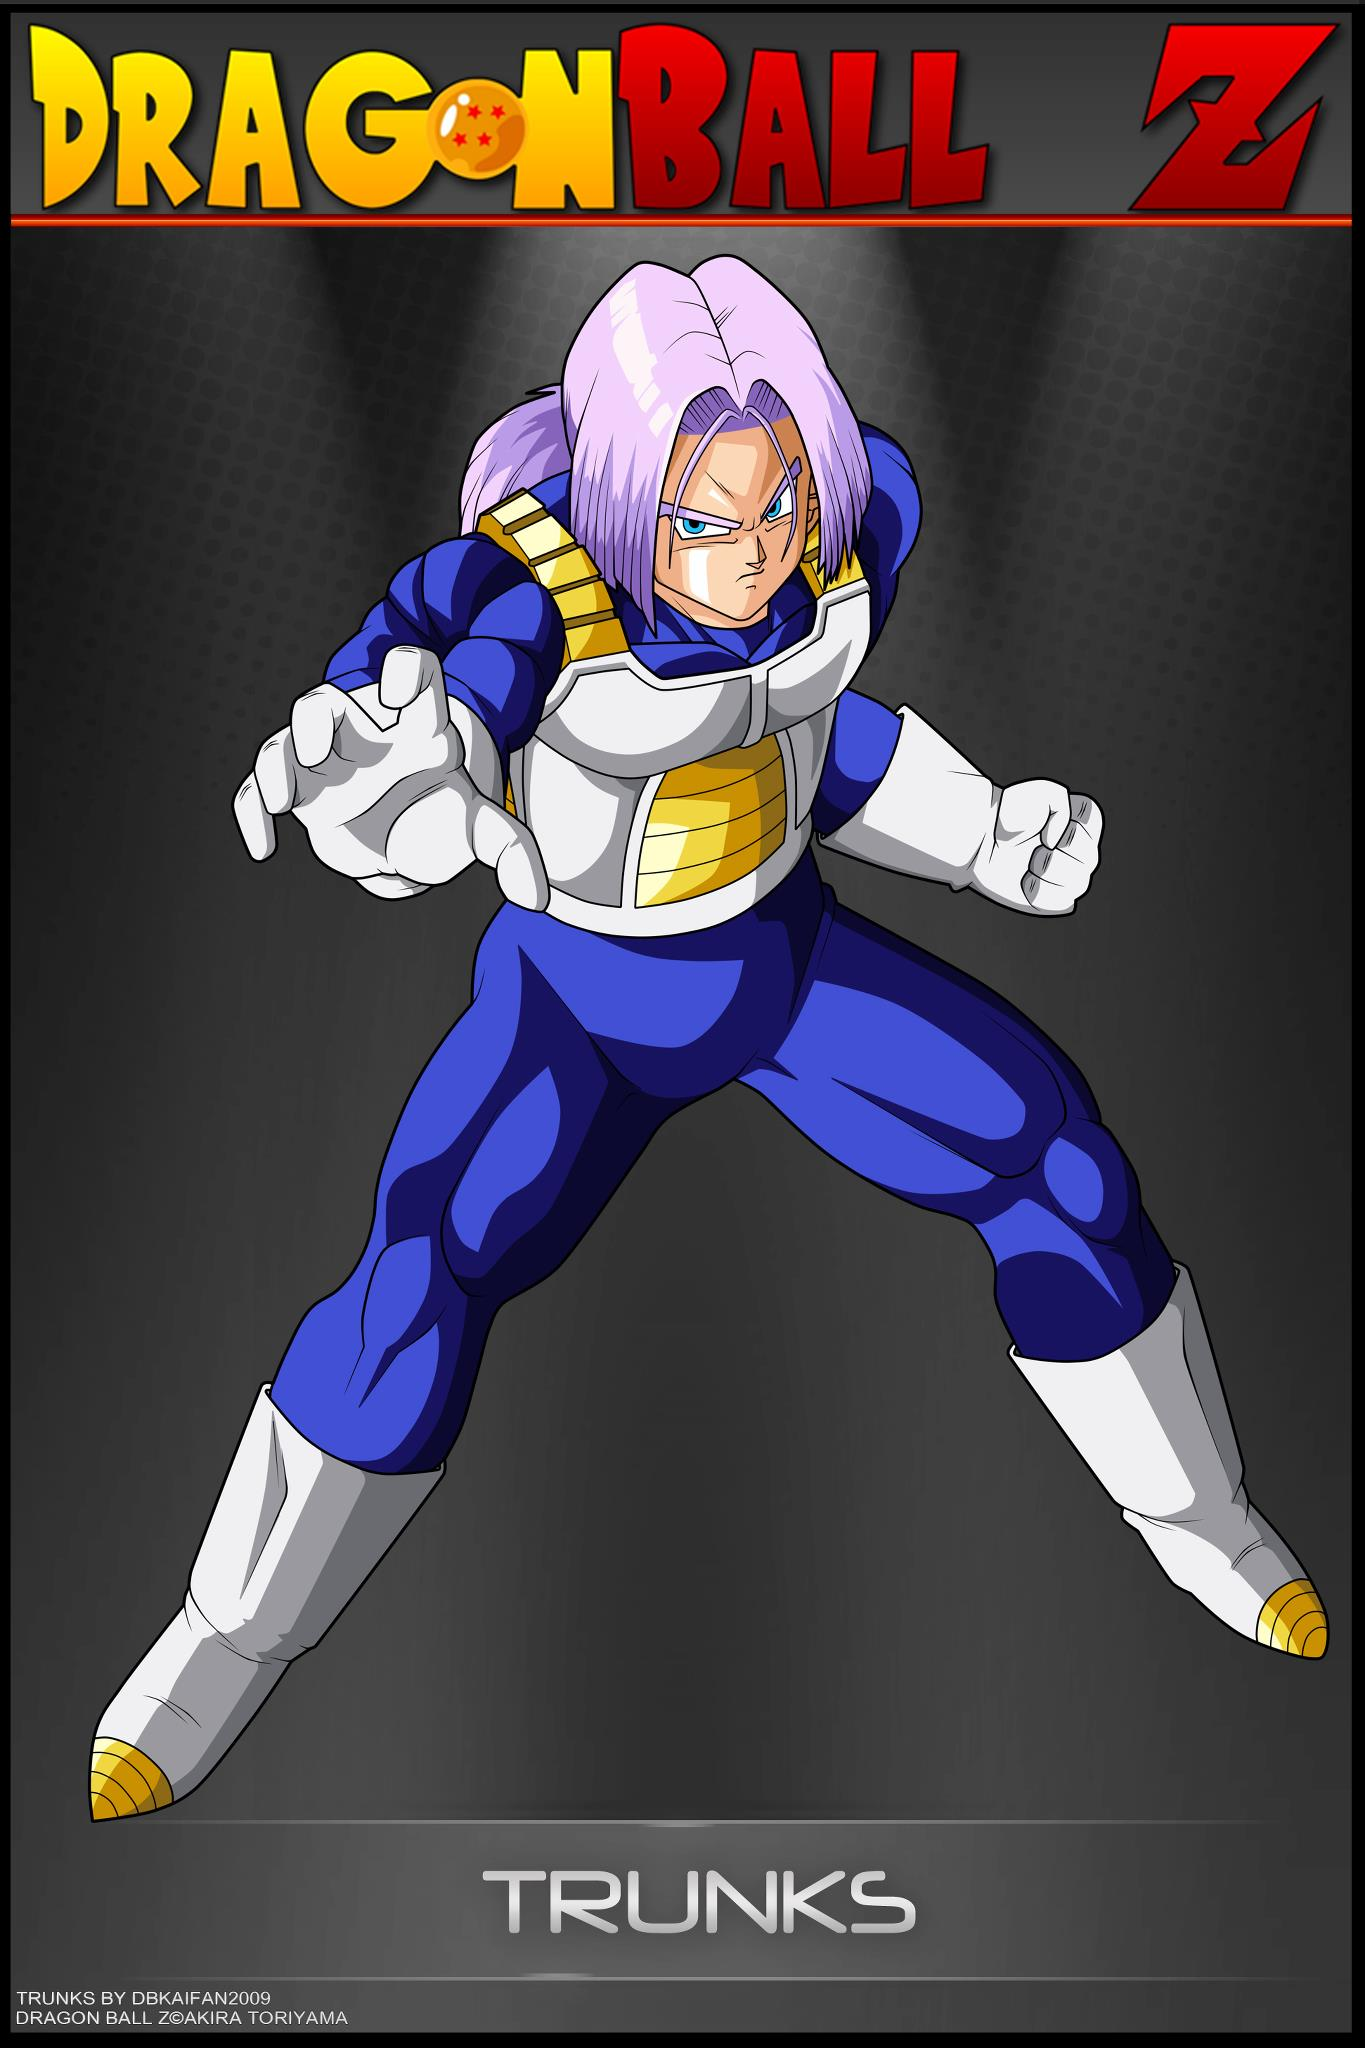 Dragon ball z dragon ball z photo 31899535 fanpop - Images dragon ball z ...